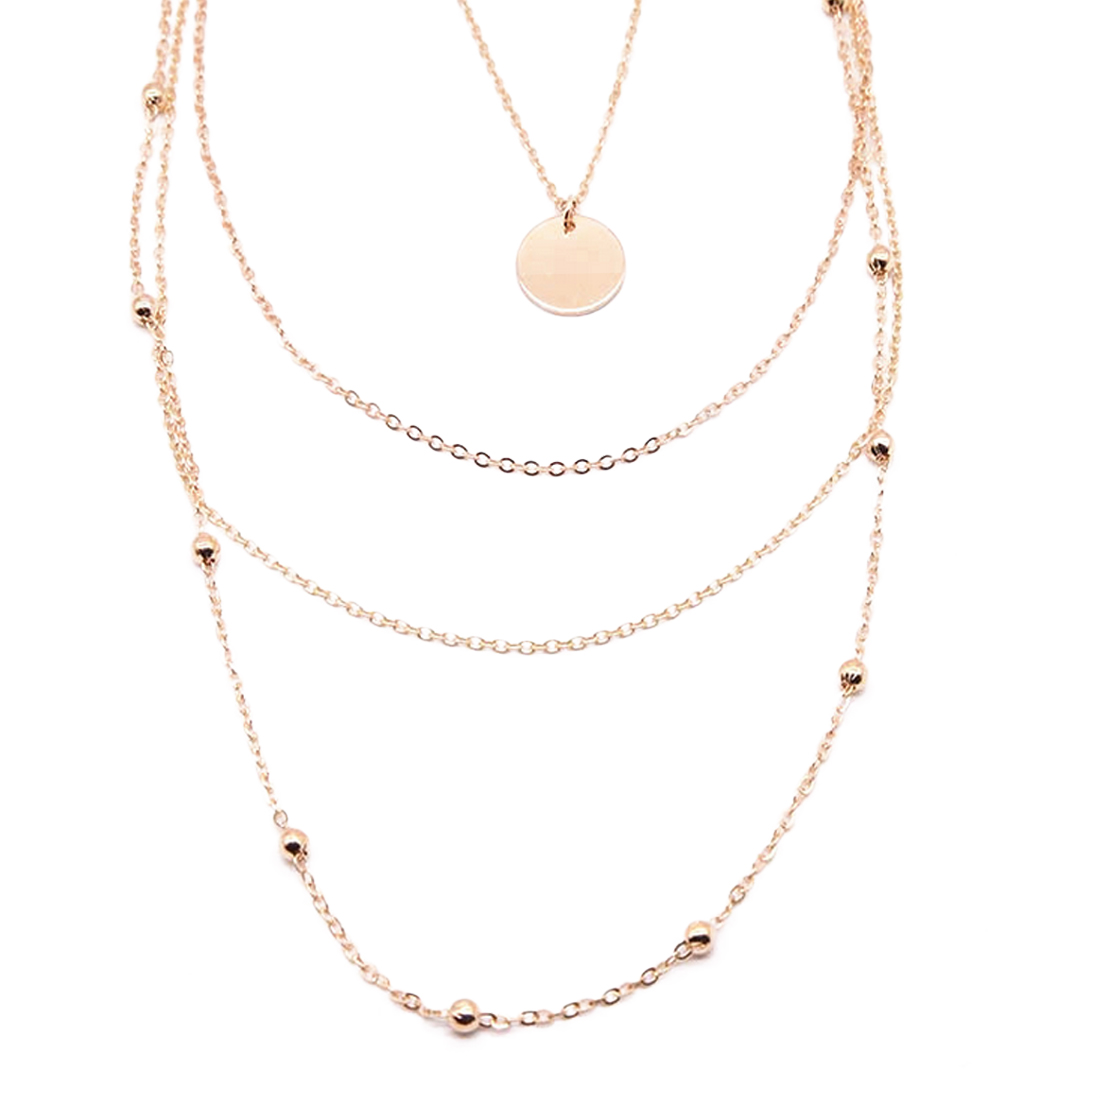 Gold Choker Necklace Multi Layer Chain Crystal Moon Star